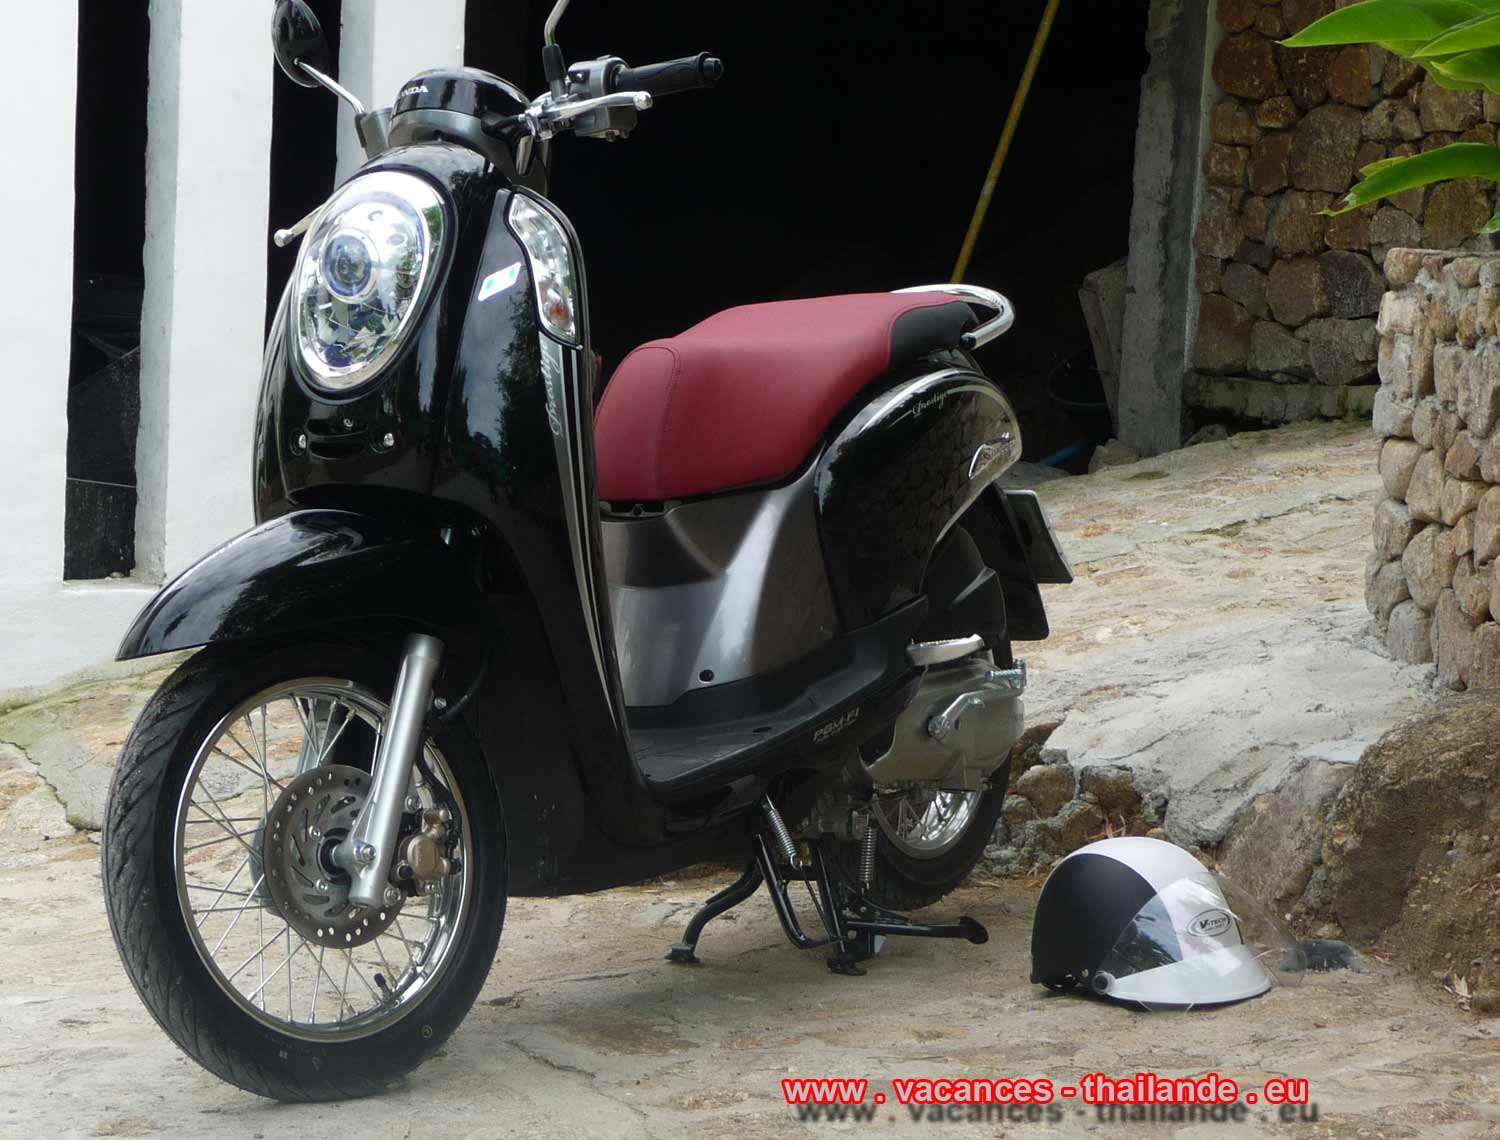 Holidays thailande, p32 scooters Honda leased the house and